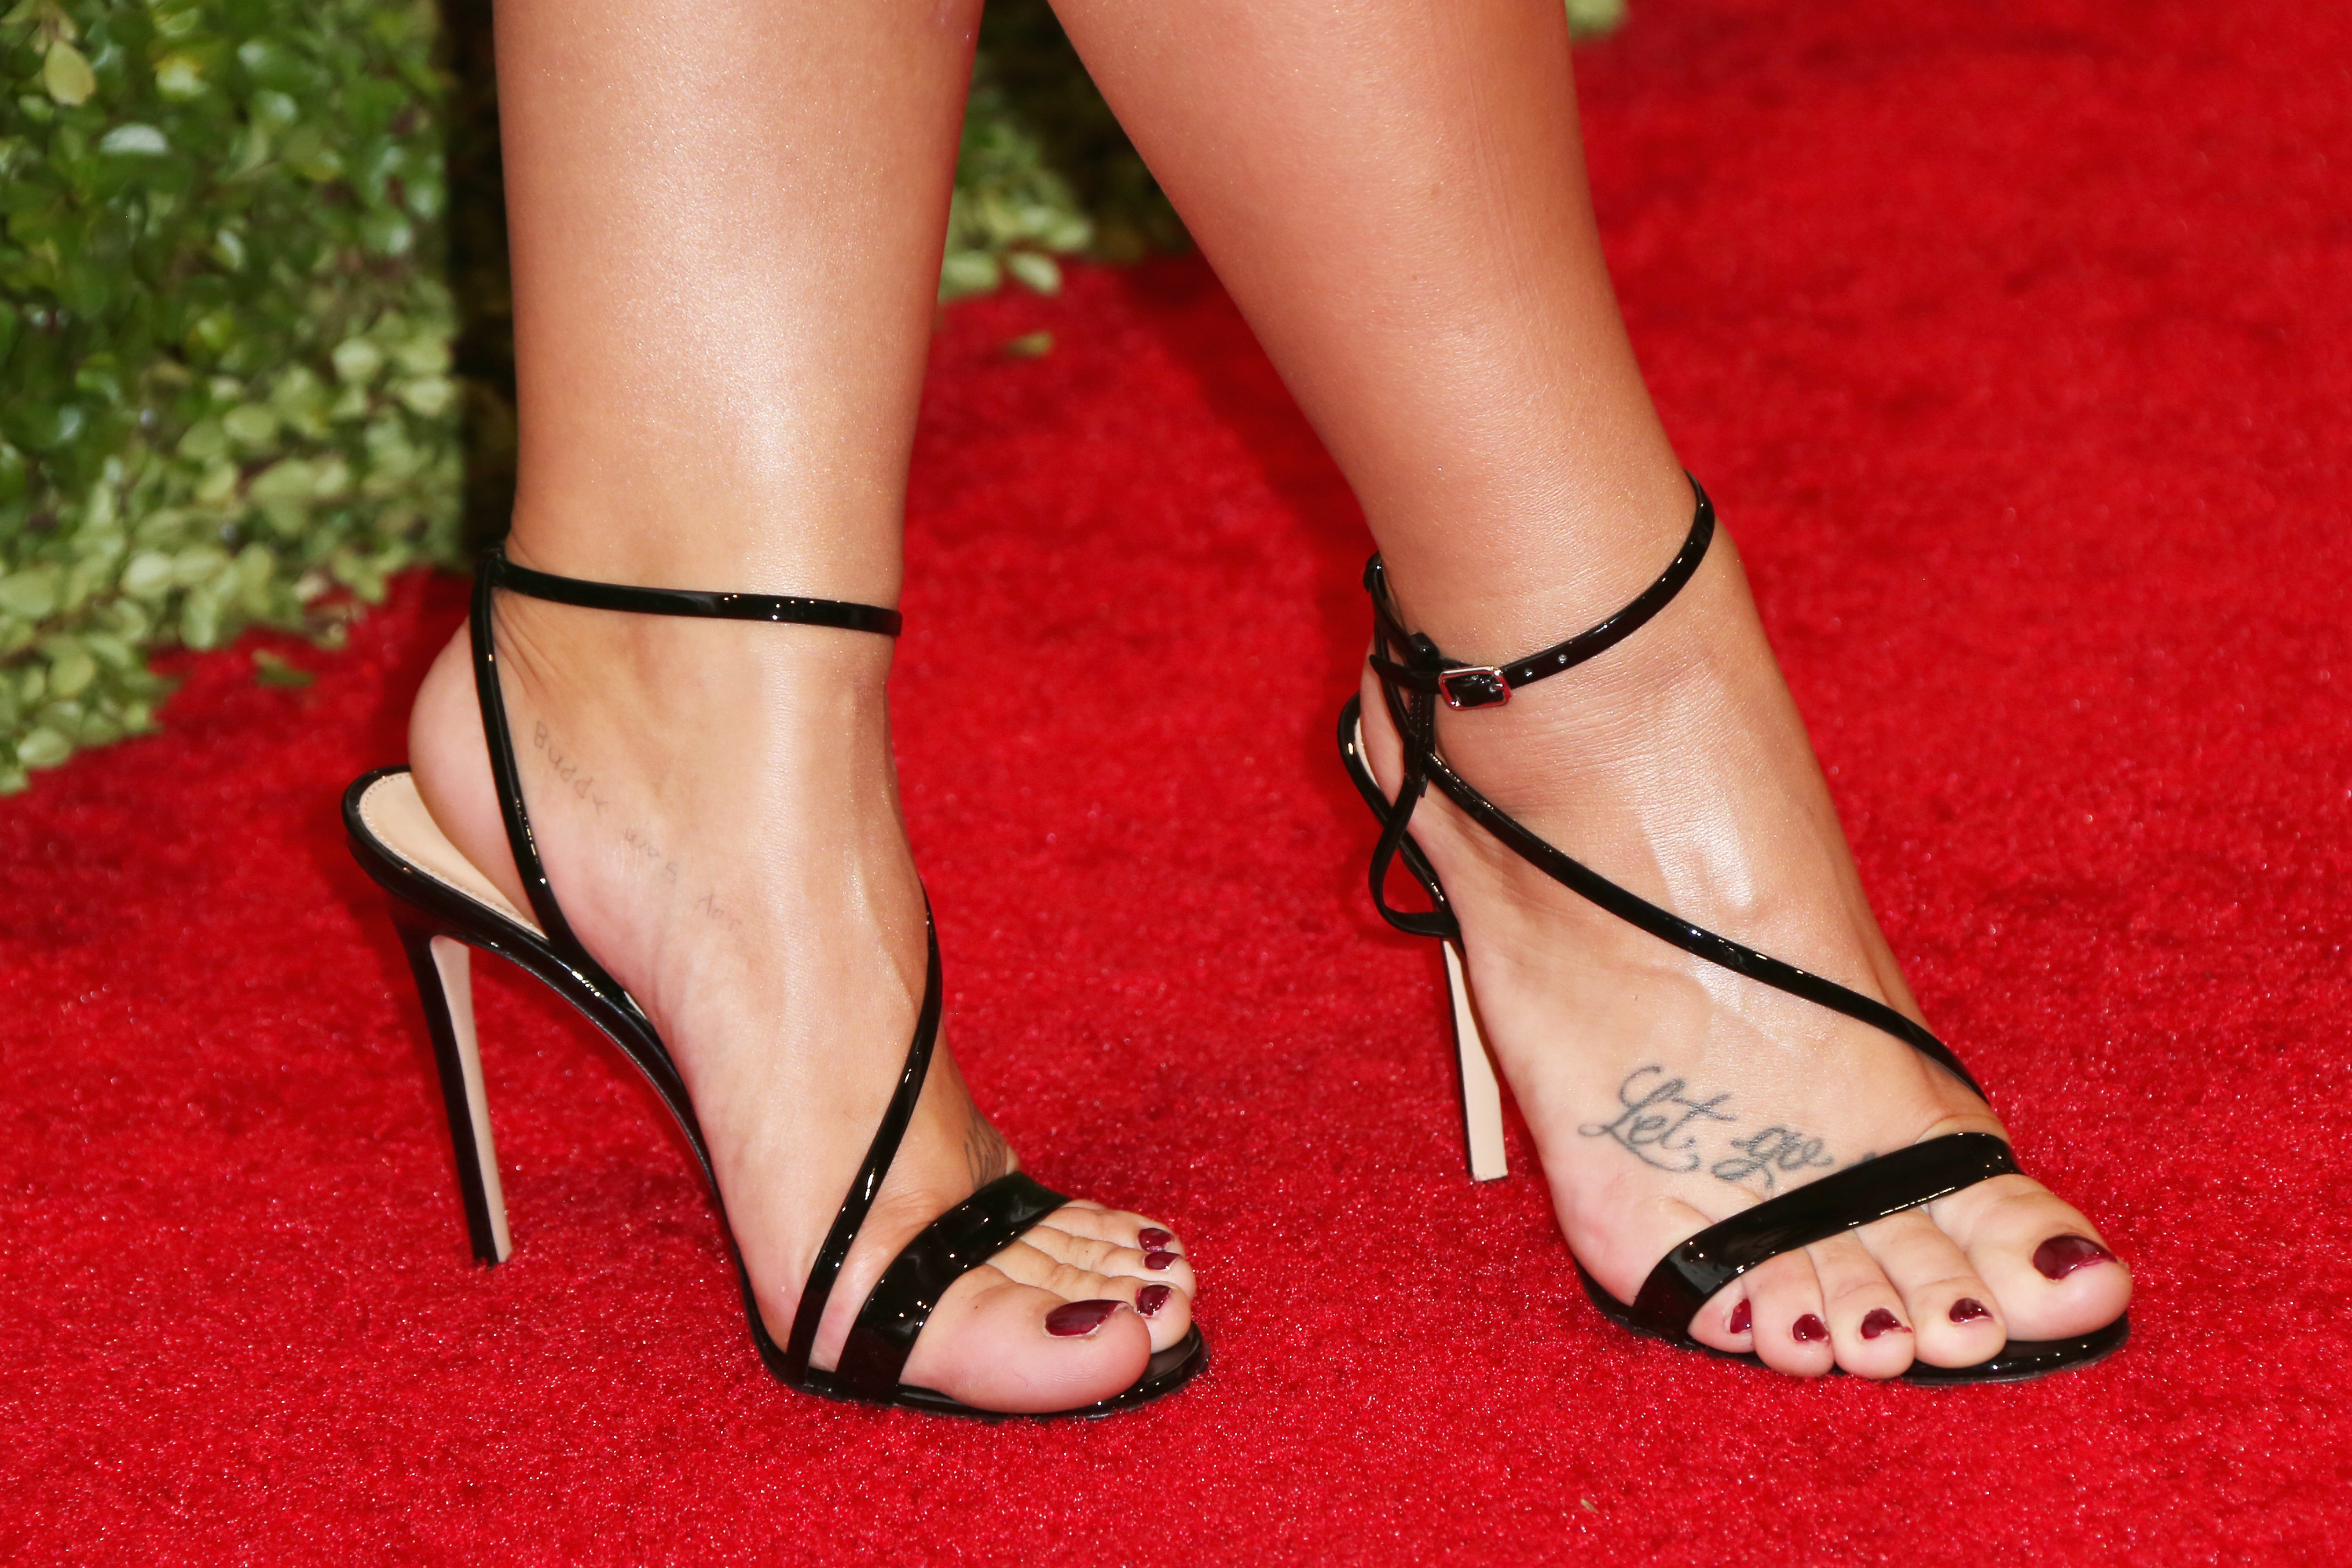 Feet Demi Lovato nudes (24 photo), Tits, Is a cute, Twitter, in bikini 2006